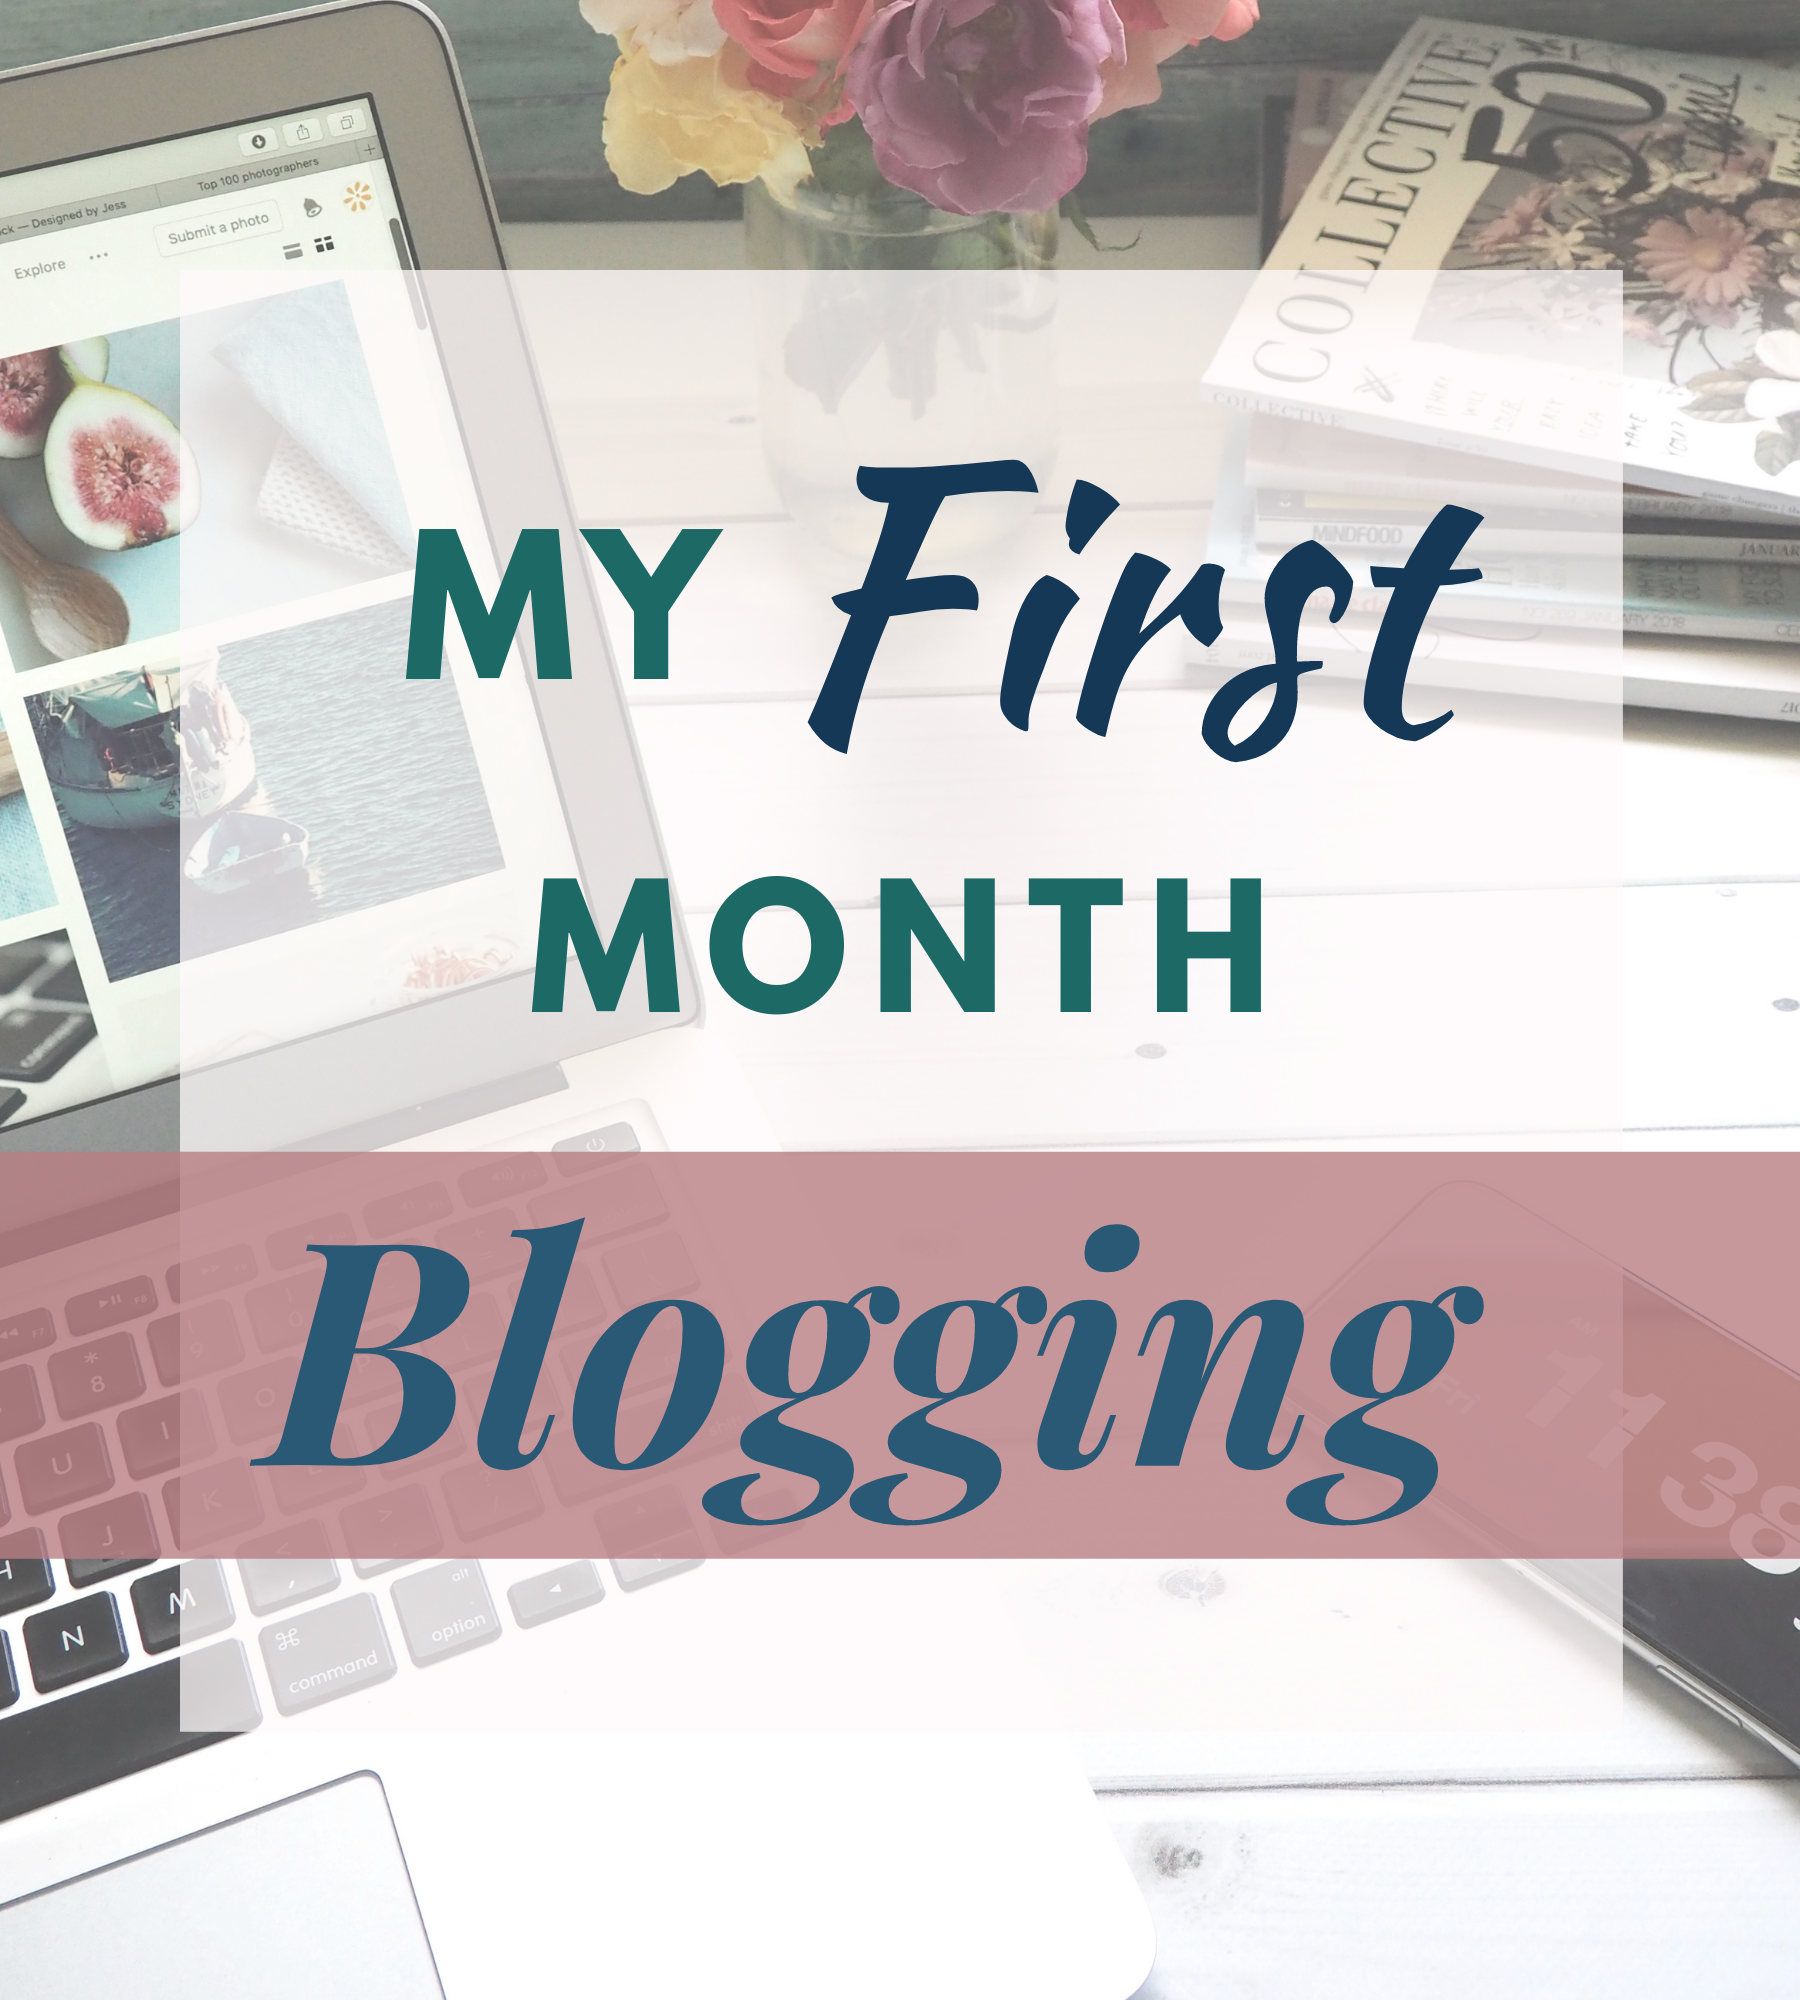 My First Month Blogging! What I learned and my plans